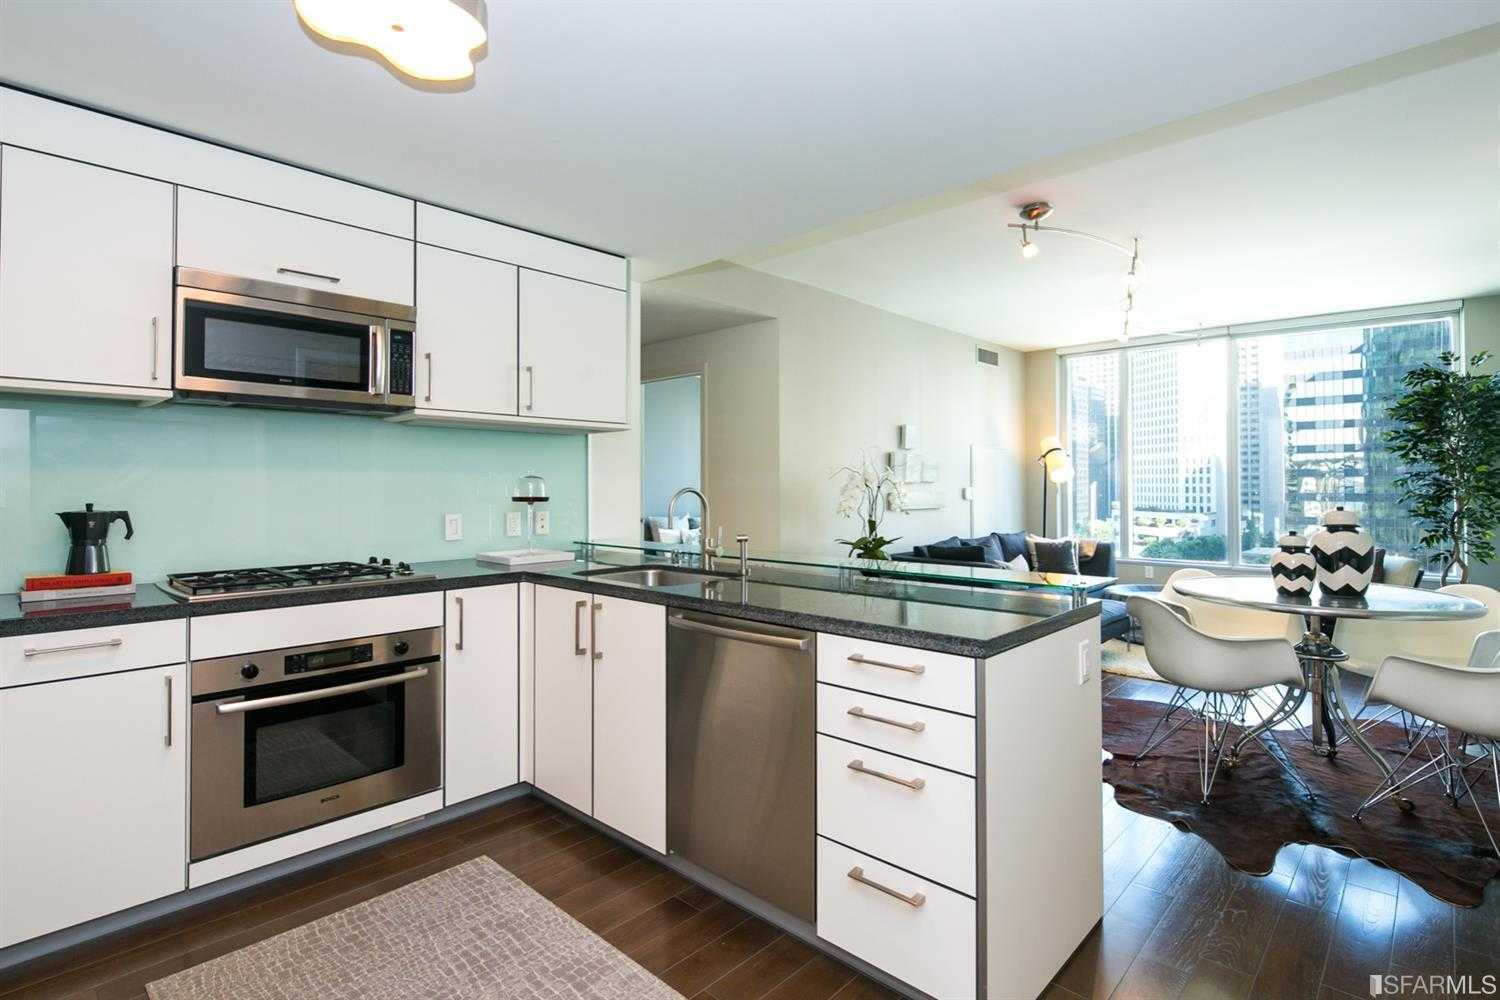 $4,600 - 2Br/2Ba -  for Sale in San Francisco